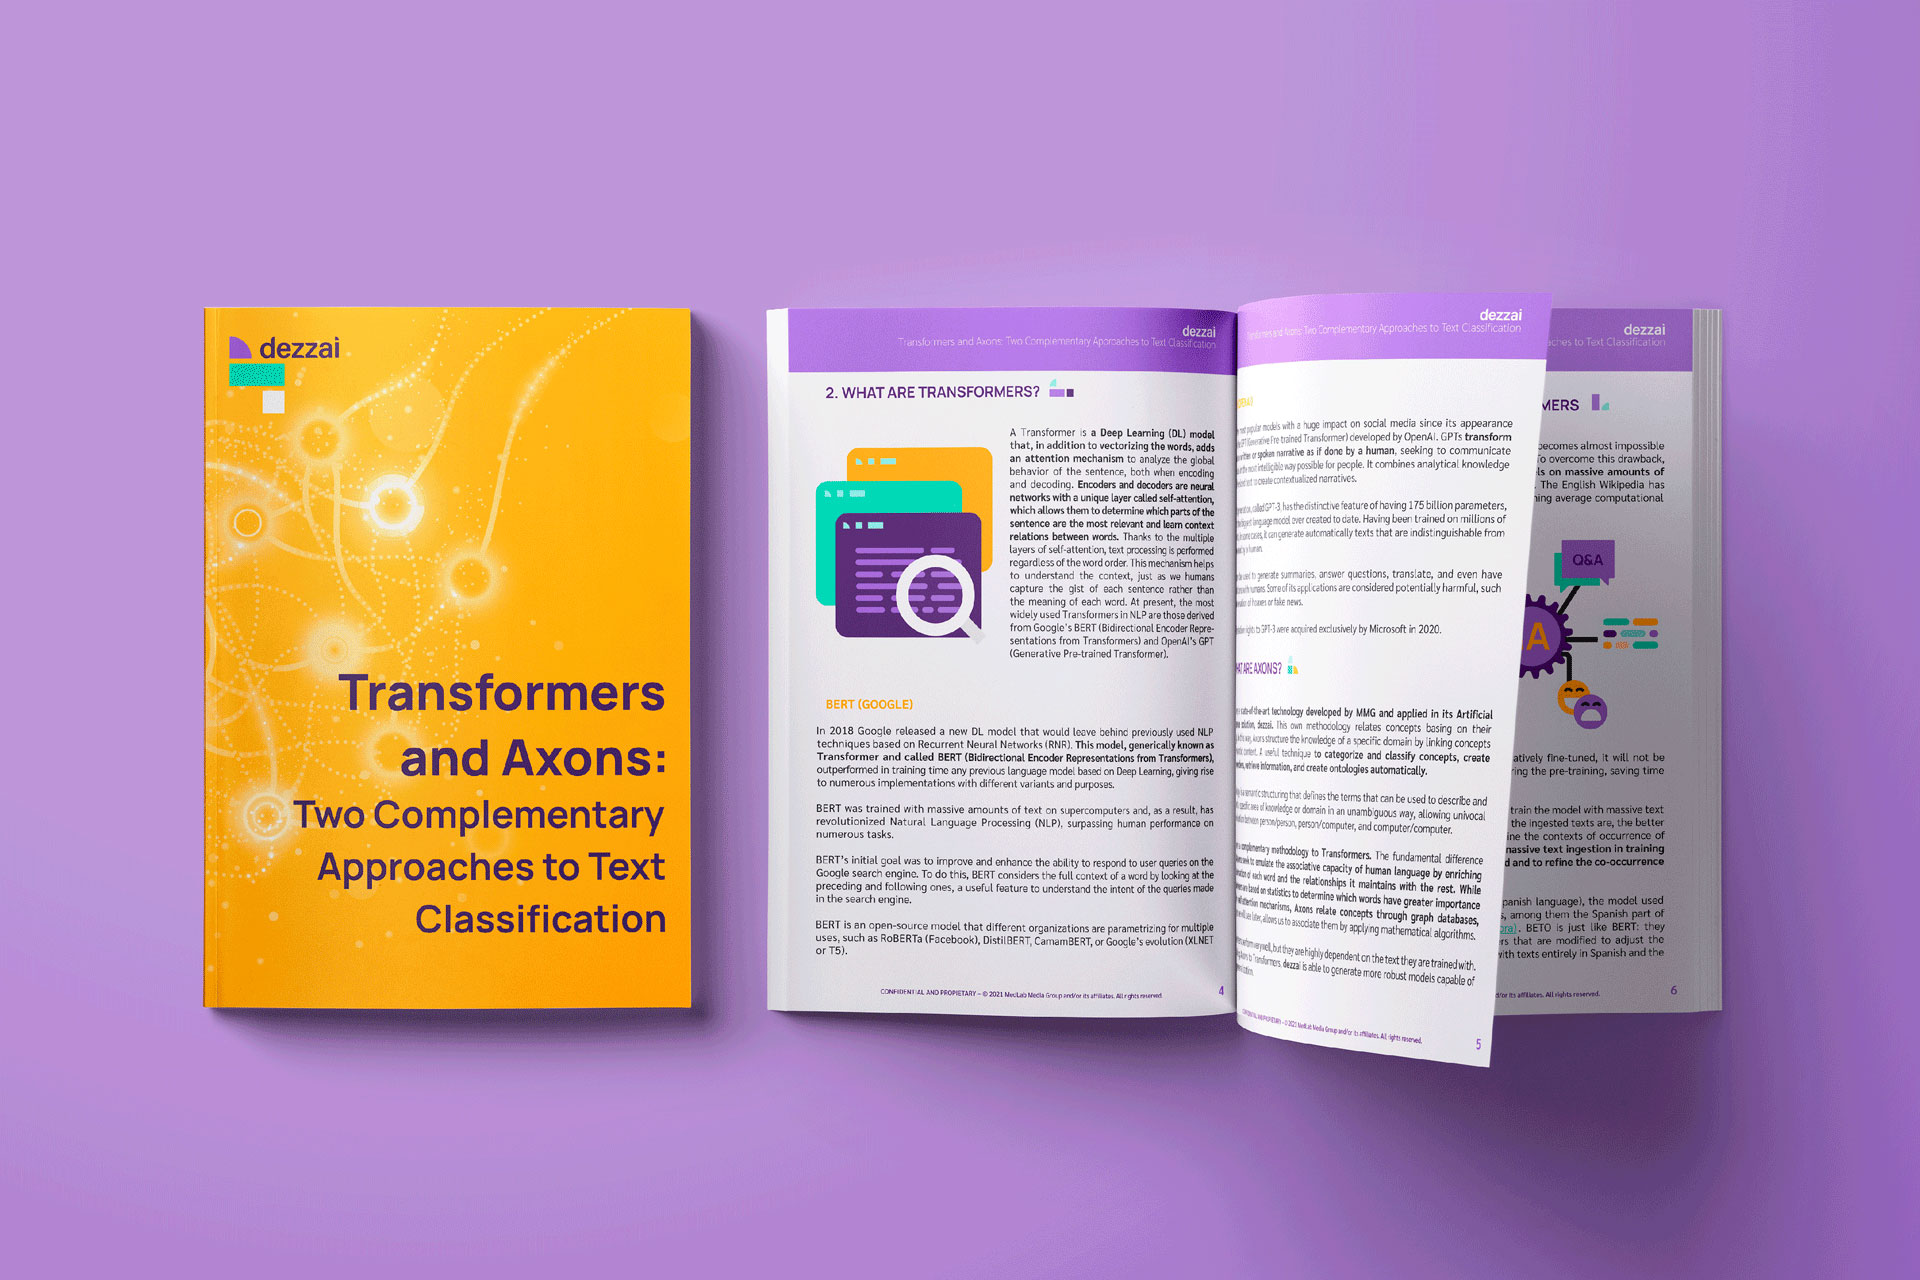 transformers and axons, artificial intelligence